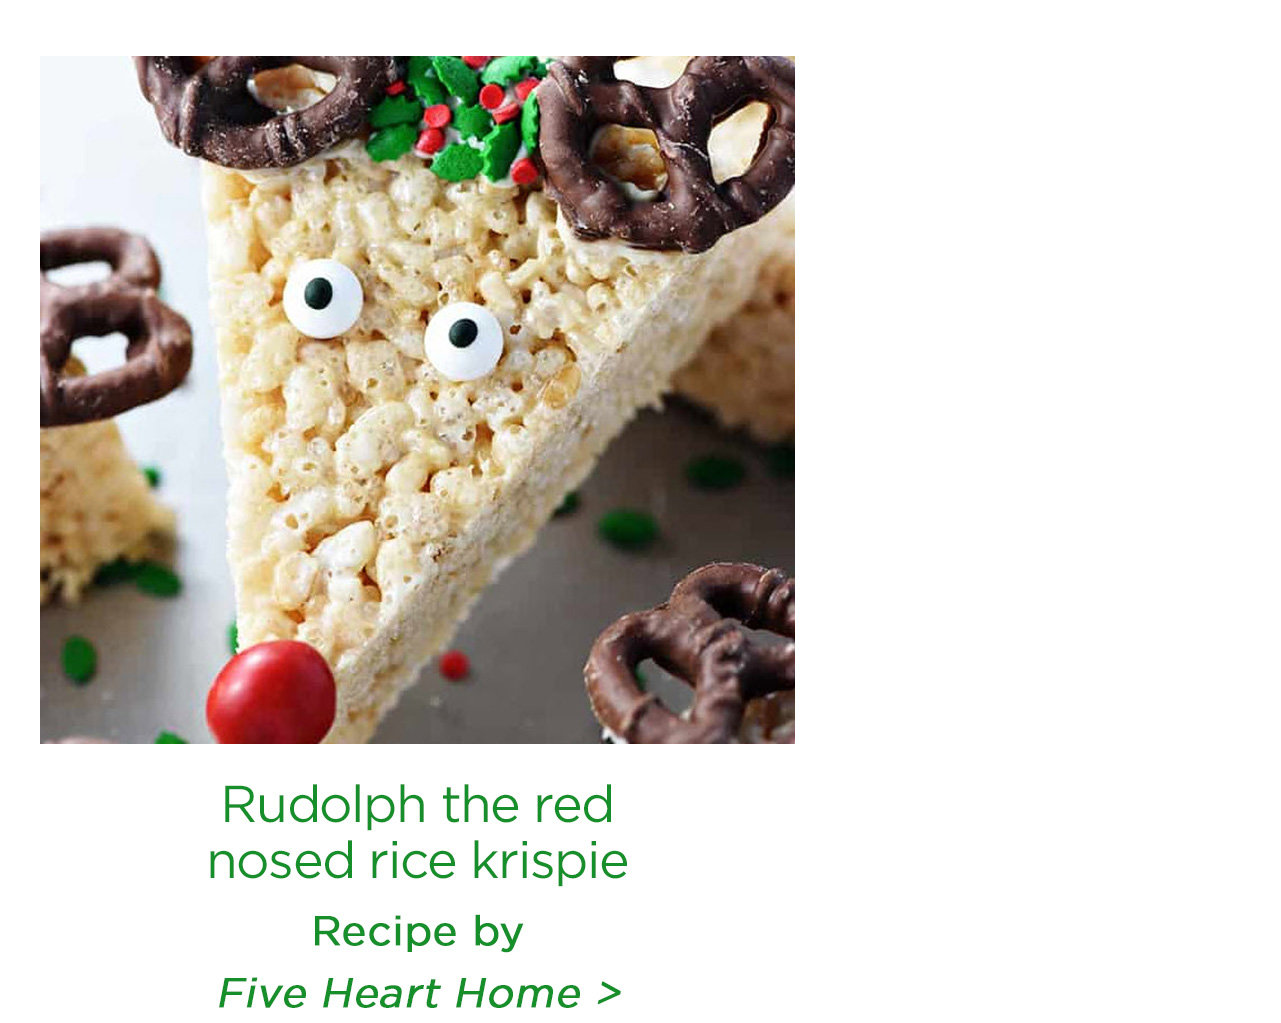 Rudolph the red nosed rice krispie